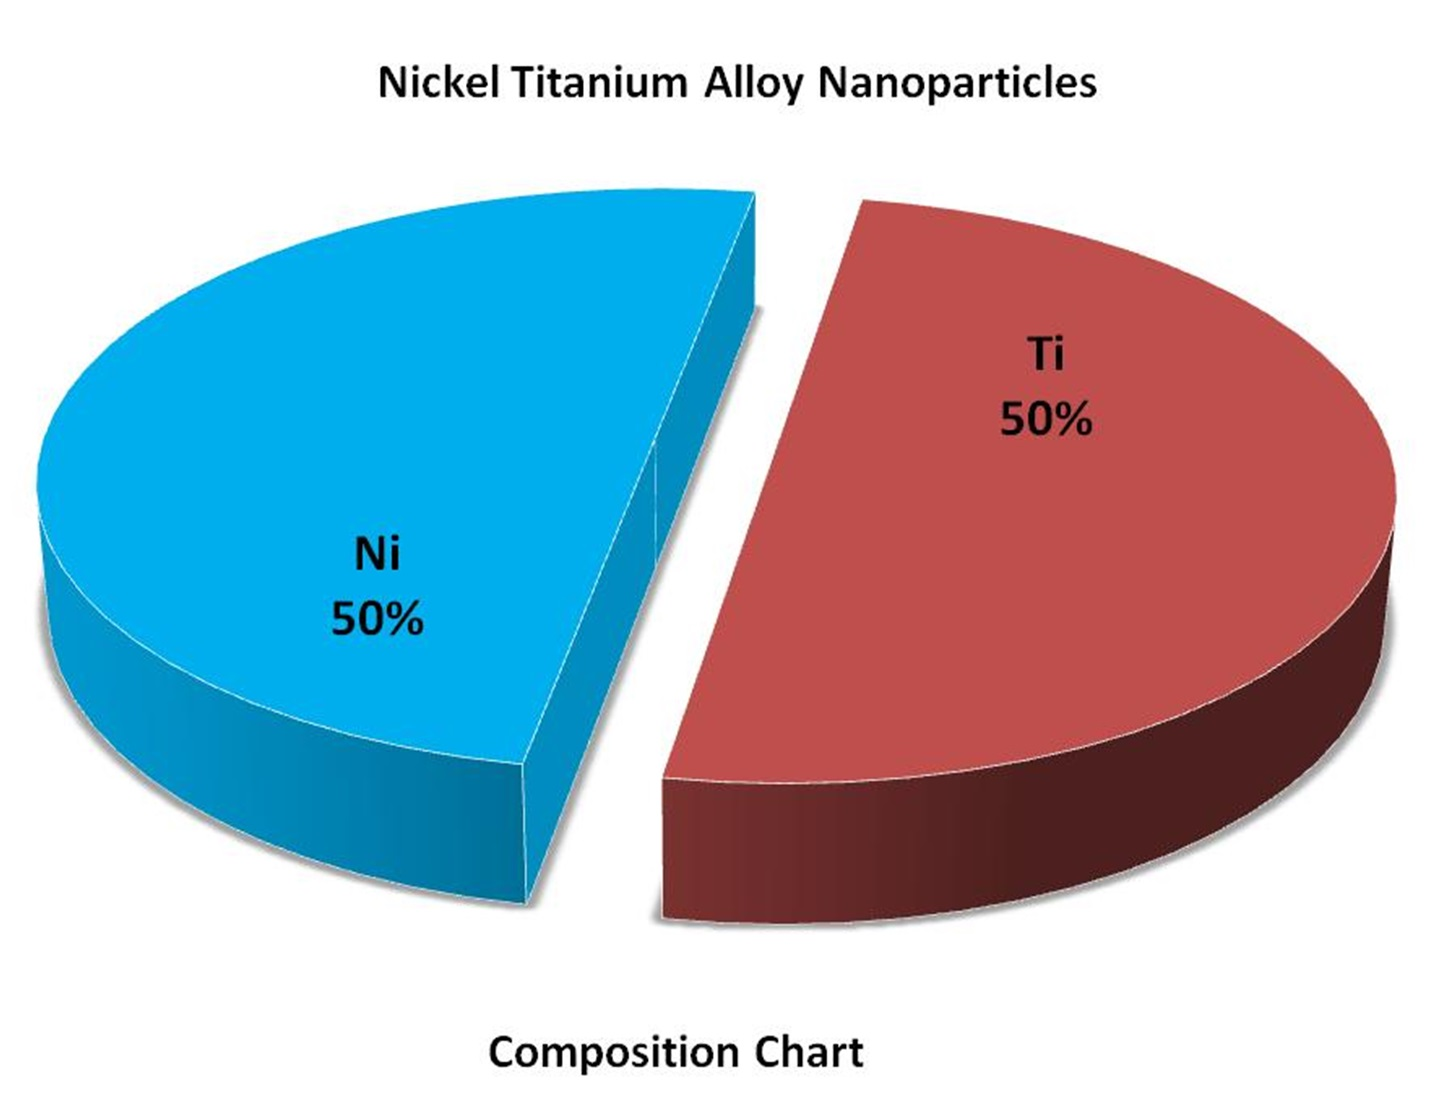 Nickel Titanium Alloy Nanoparticles